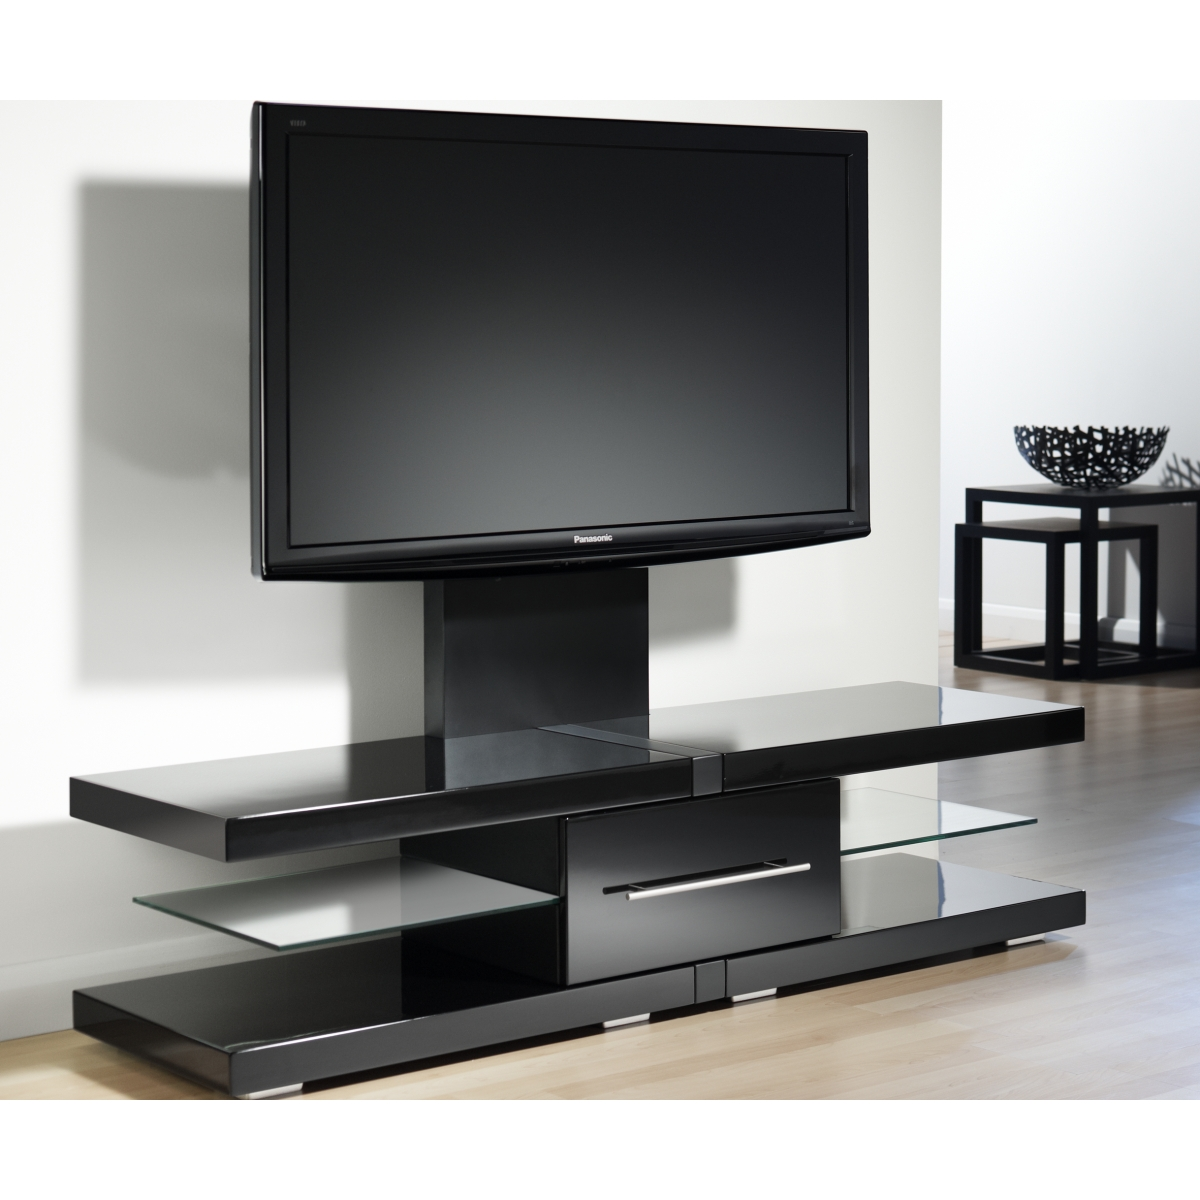 Cool flat screen tv stands with mount homesfeed for Cool tv wall mounts